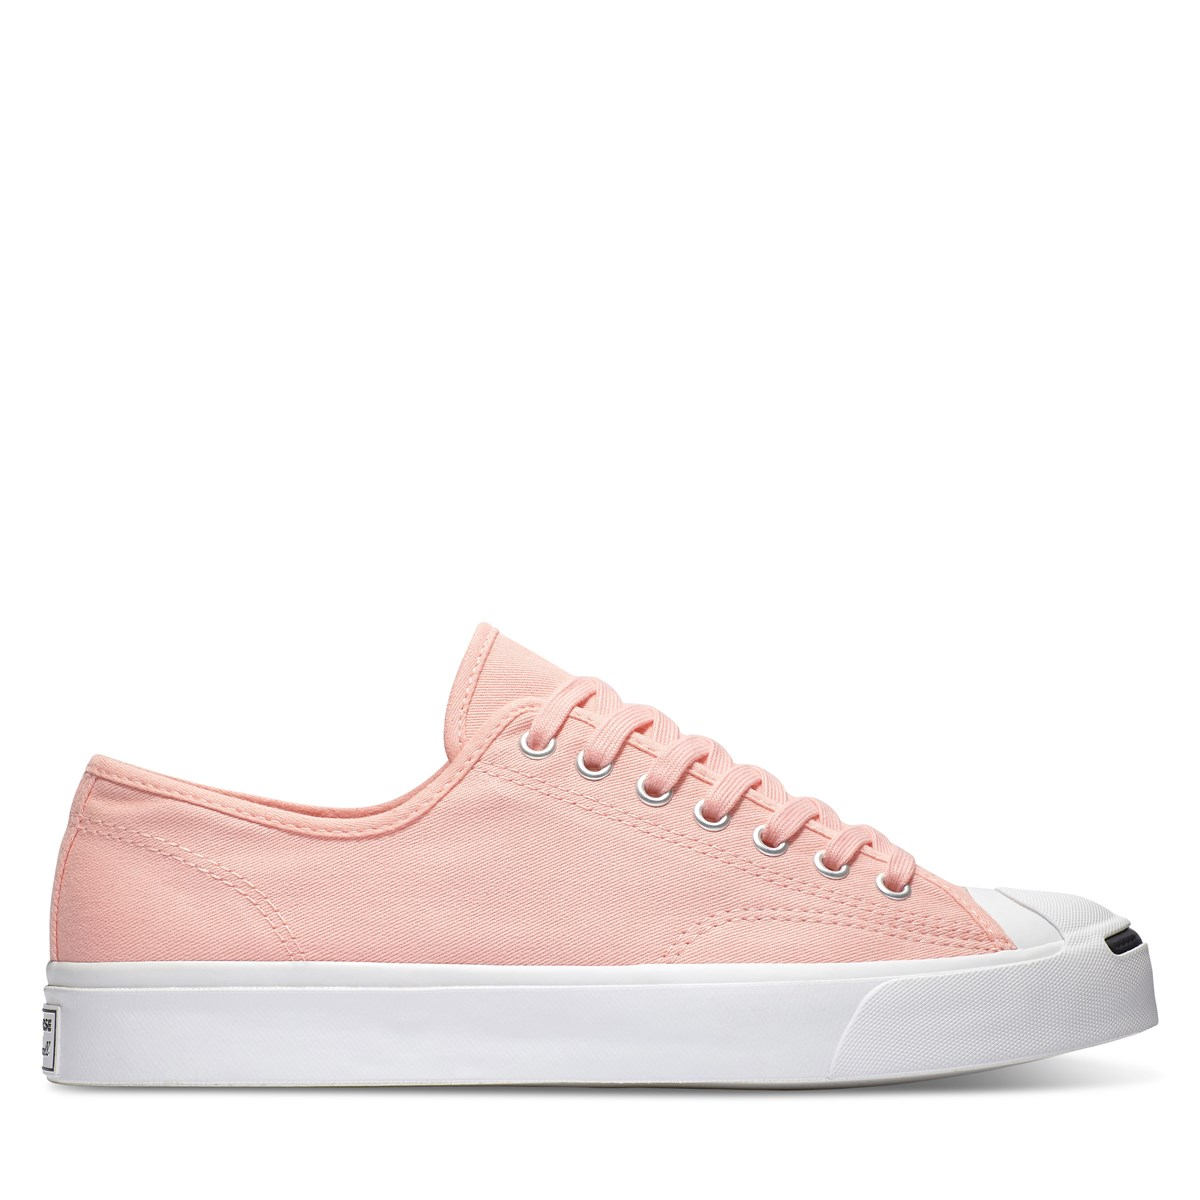 Men's Jack Purcell Sneaker in Coral